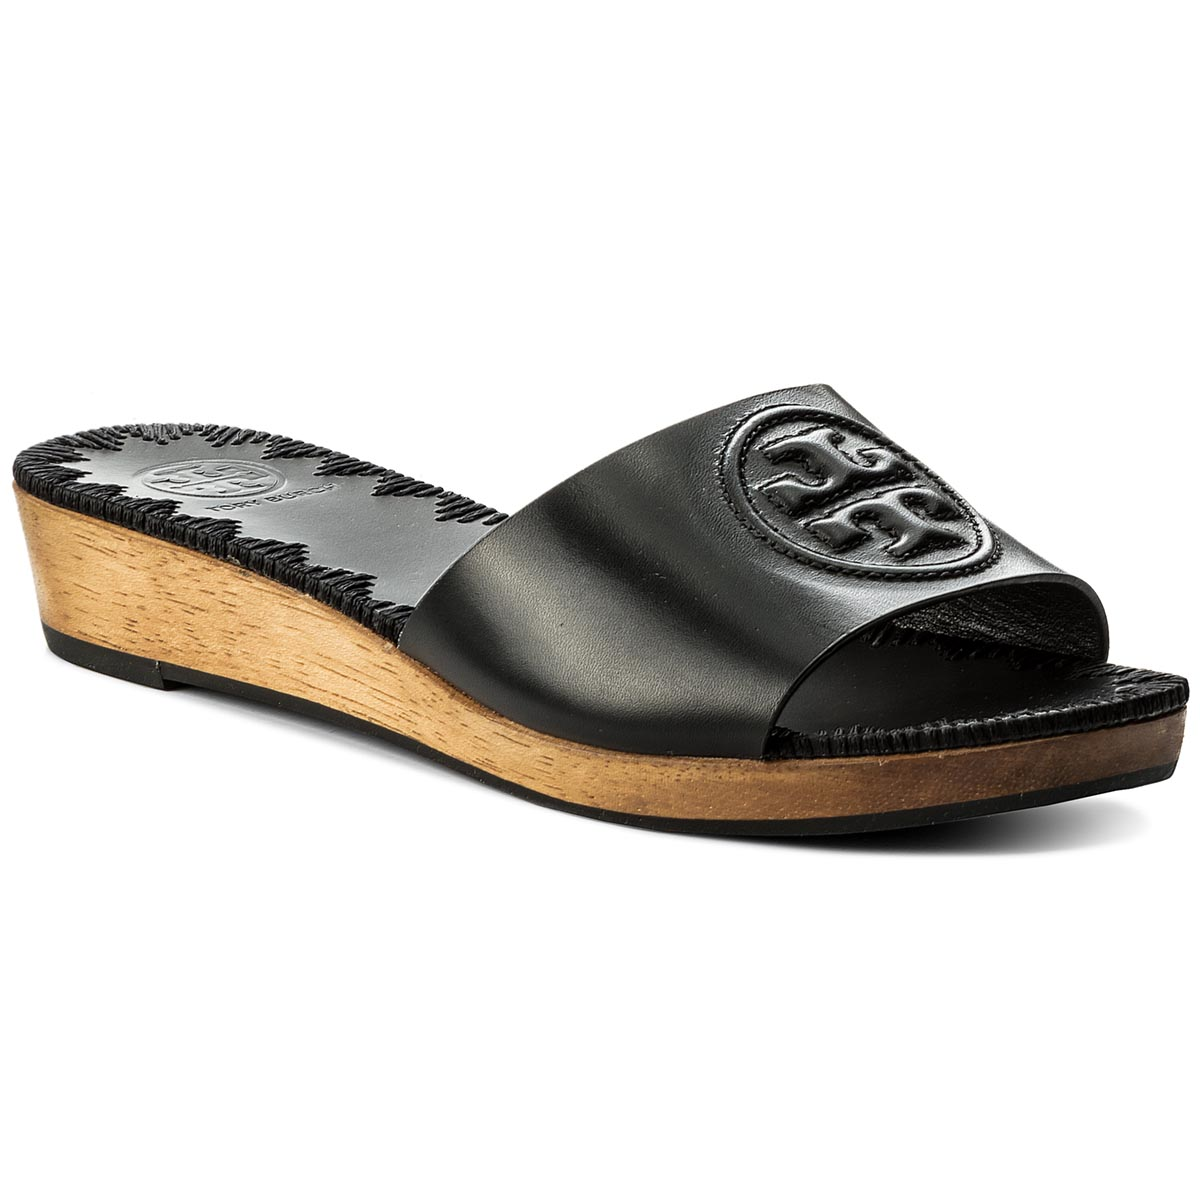 Klapki TORY BURCH - Patty 46620 Perfect Black 006